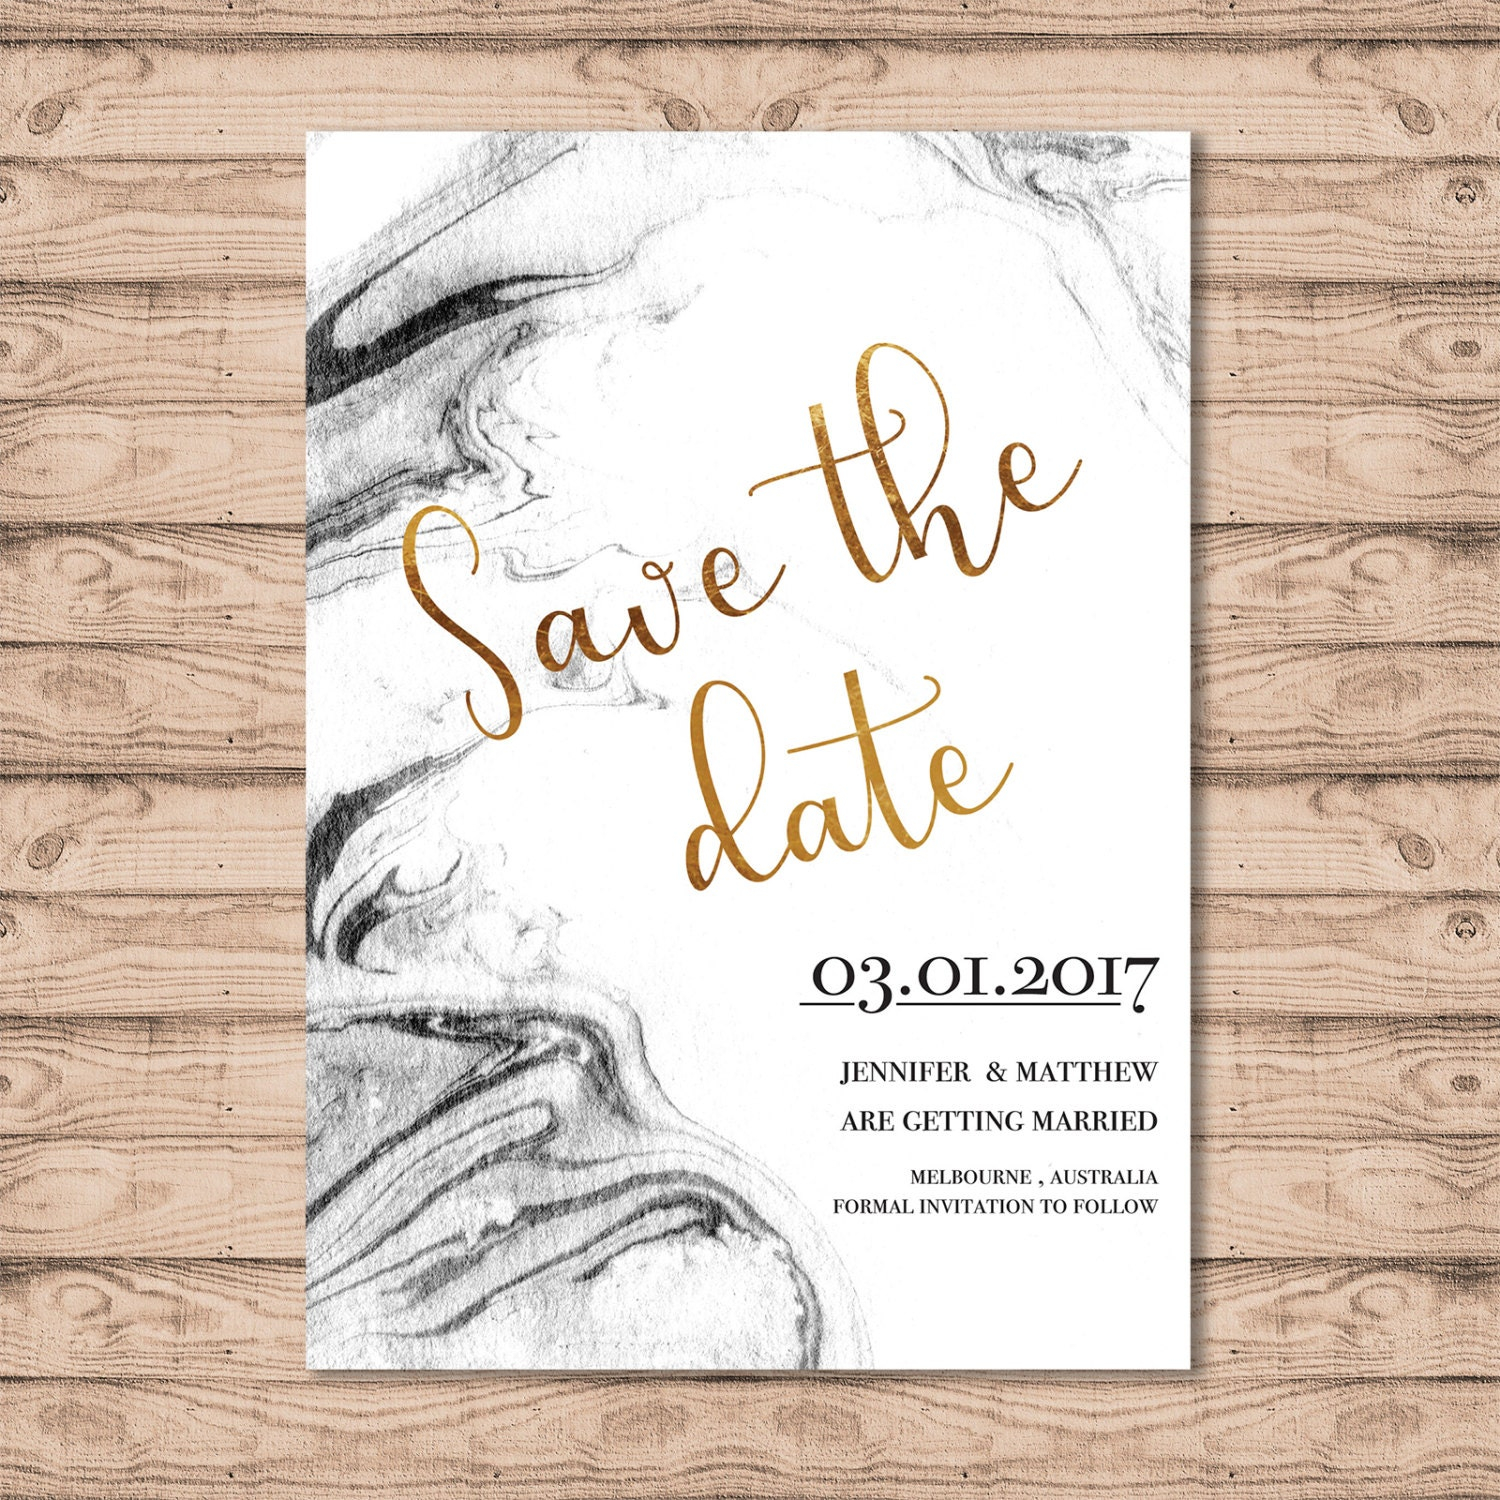 Marble Wedding Save The Date Card   Print At Home File Or Printed  Invitations   Marble Black And White   Faux Gold Foil Look Design